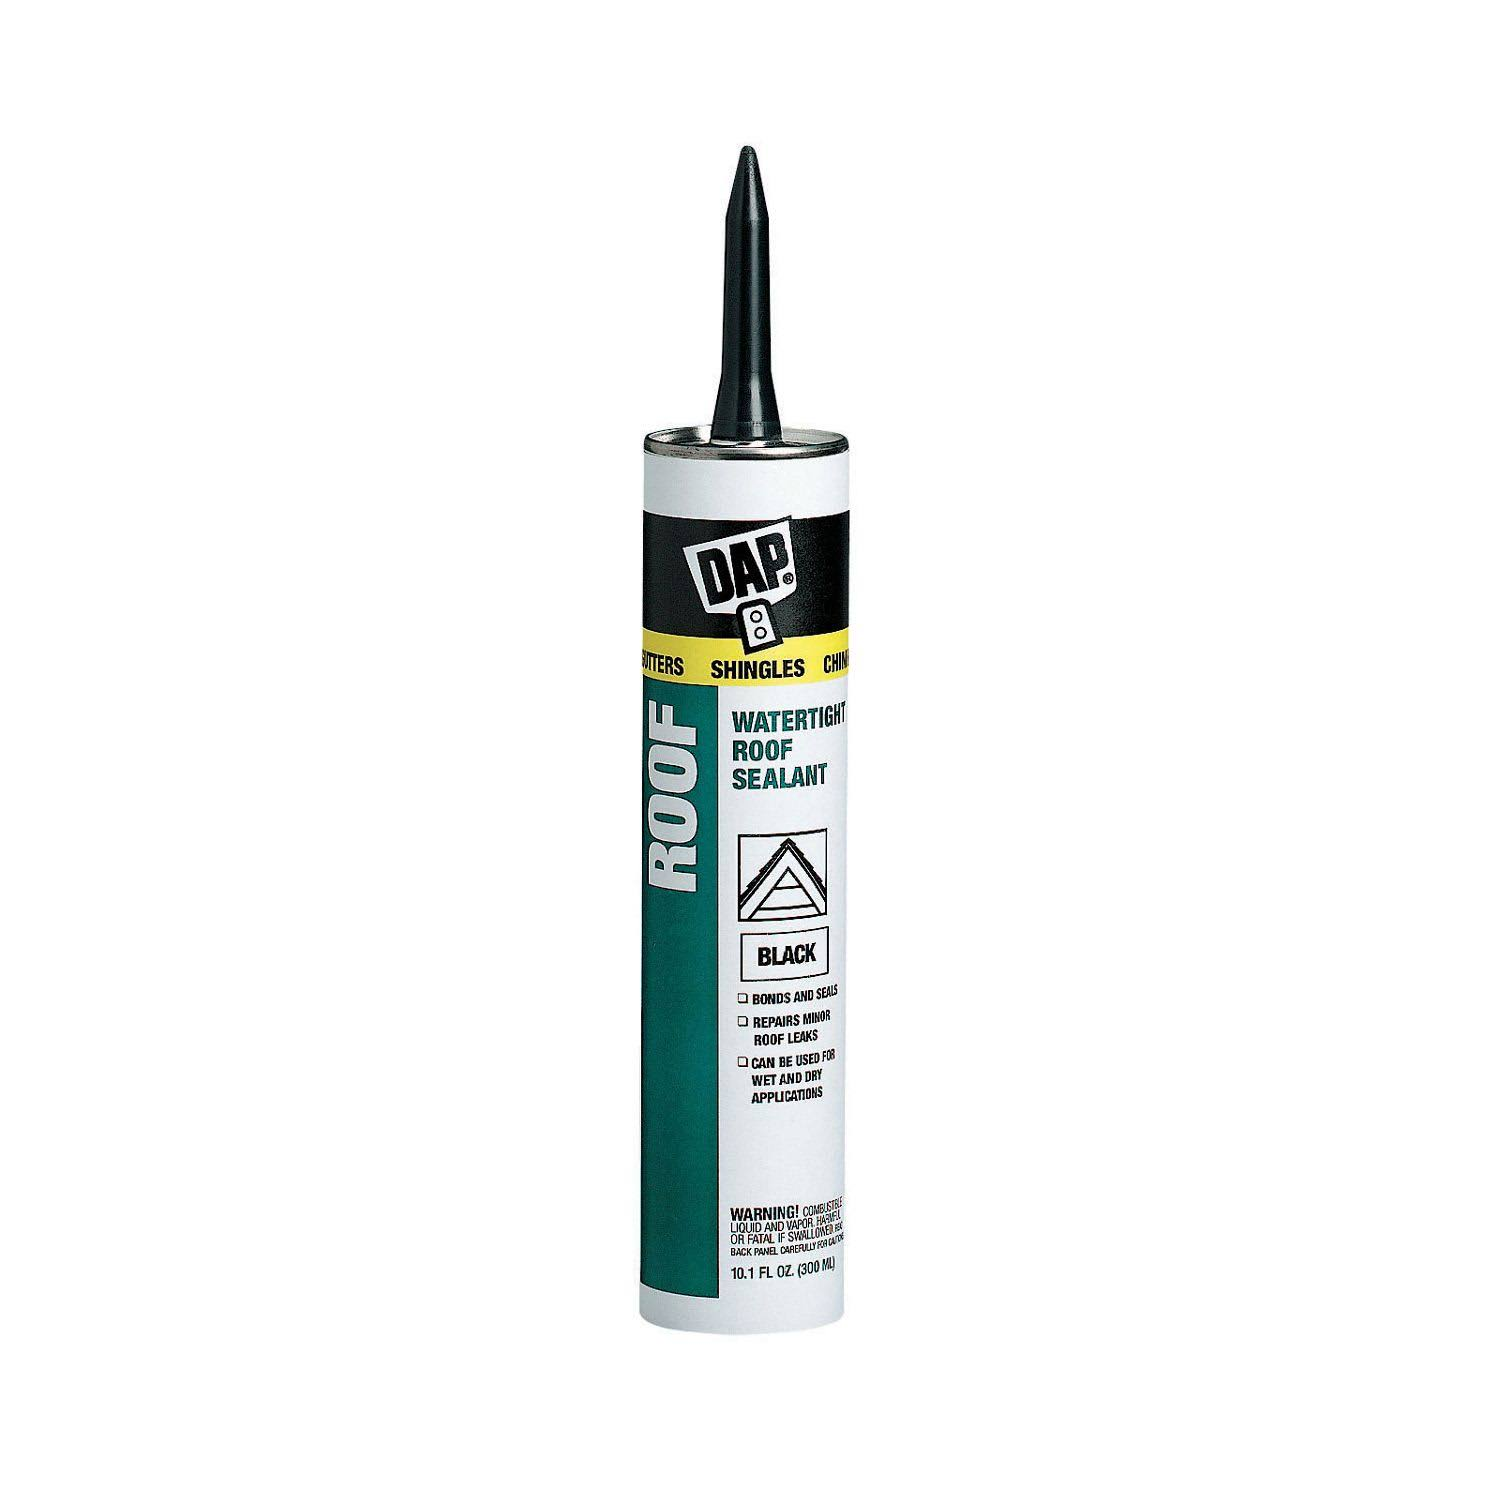 DAP Roof Sealant - Black, 10.1 oz